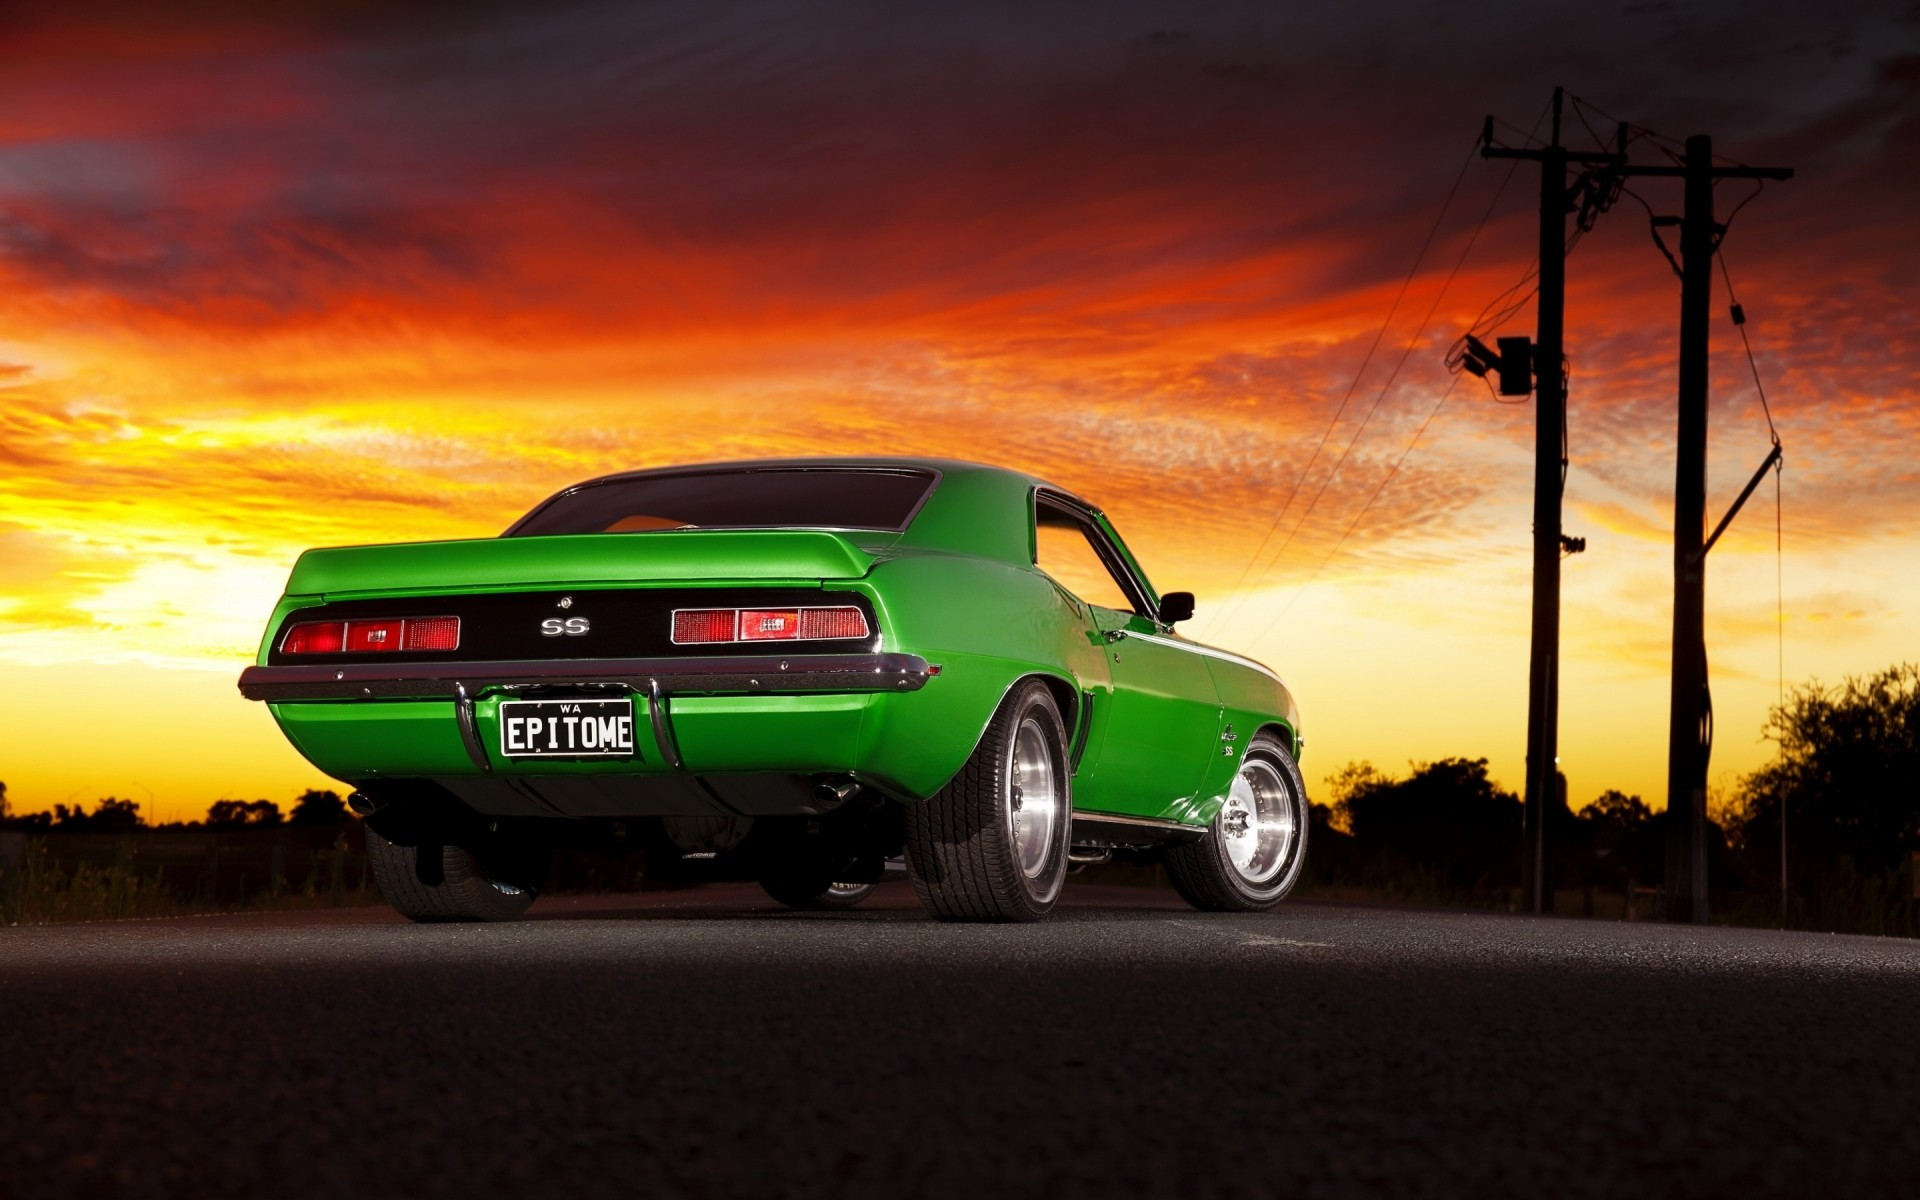 Old Green Chevrolet Camaro - Phone wallpapers